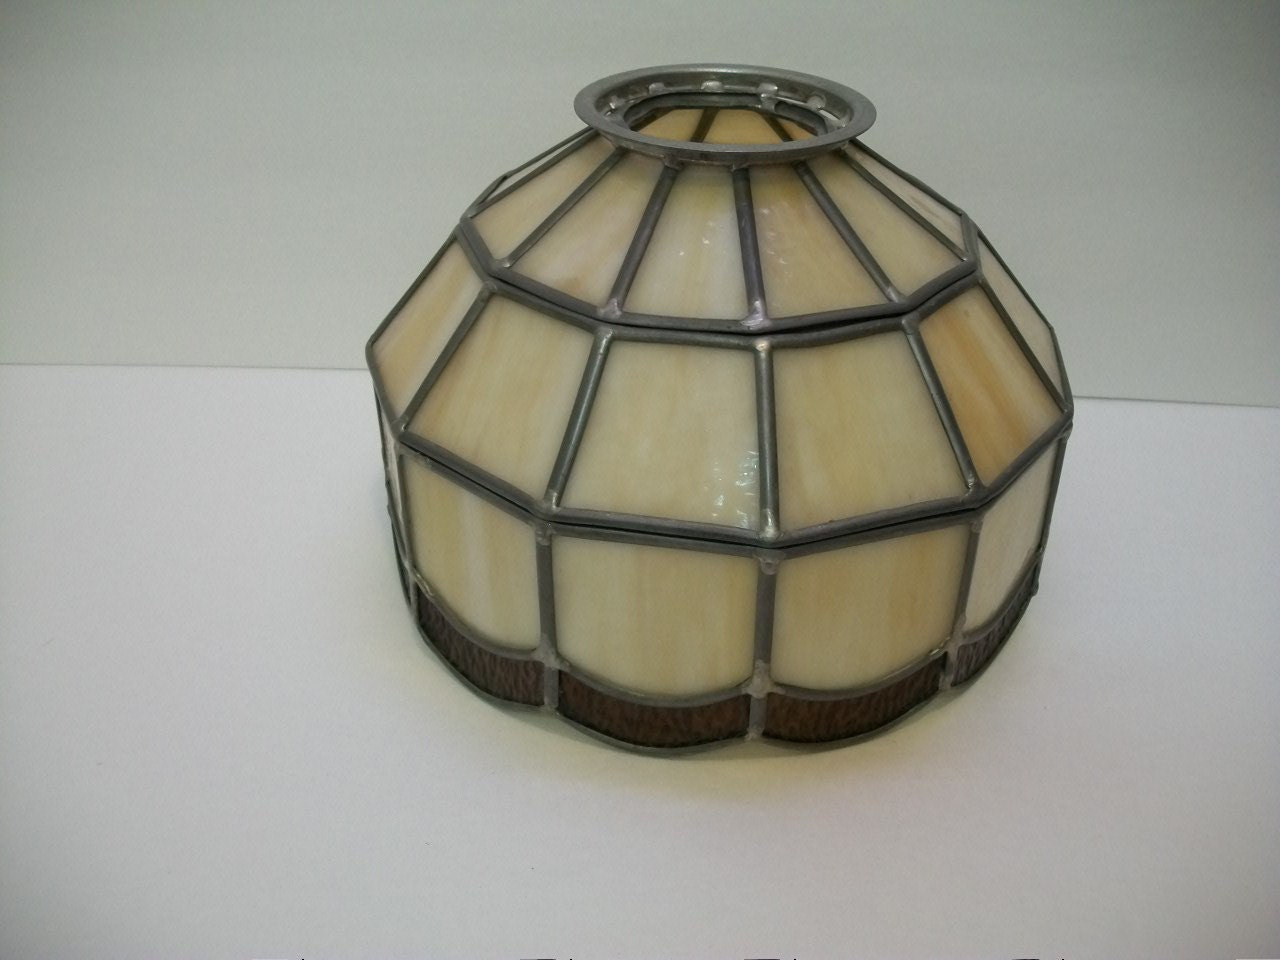 tiffany style stain glass lamp shade leaded glass lamp shade. Black Bedroom Furniture Sets. Home Design Ideas